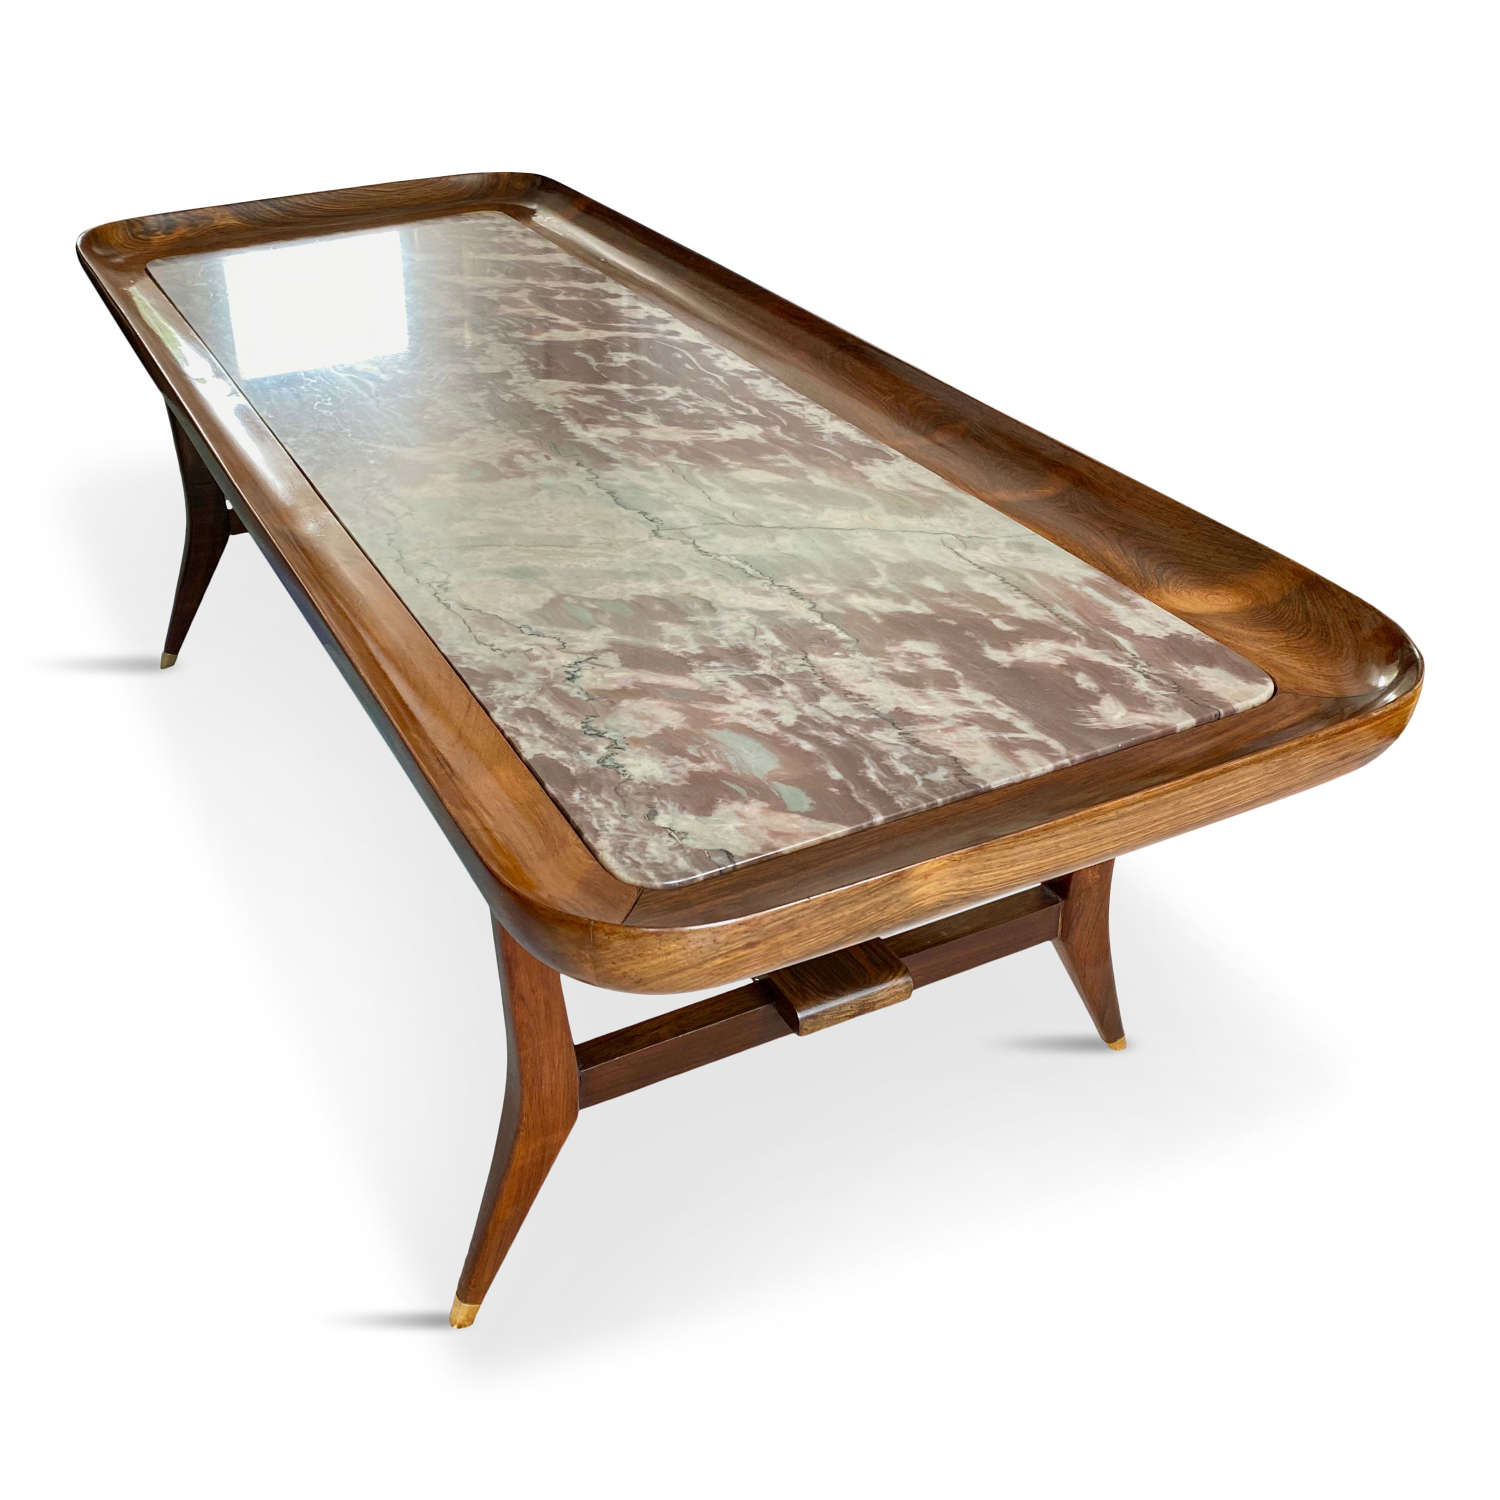 Rosewood and marble coffee table by Giuseppe Scapinelli